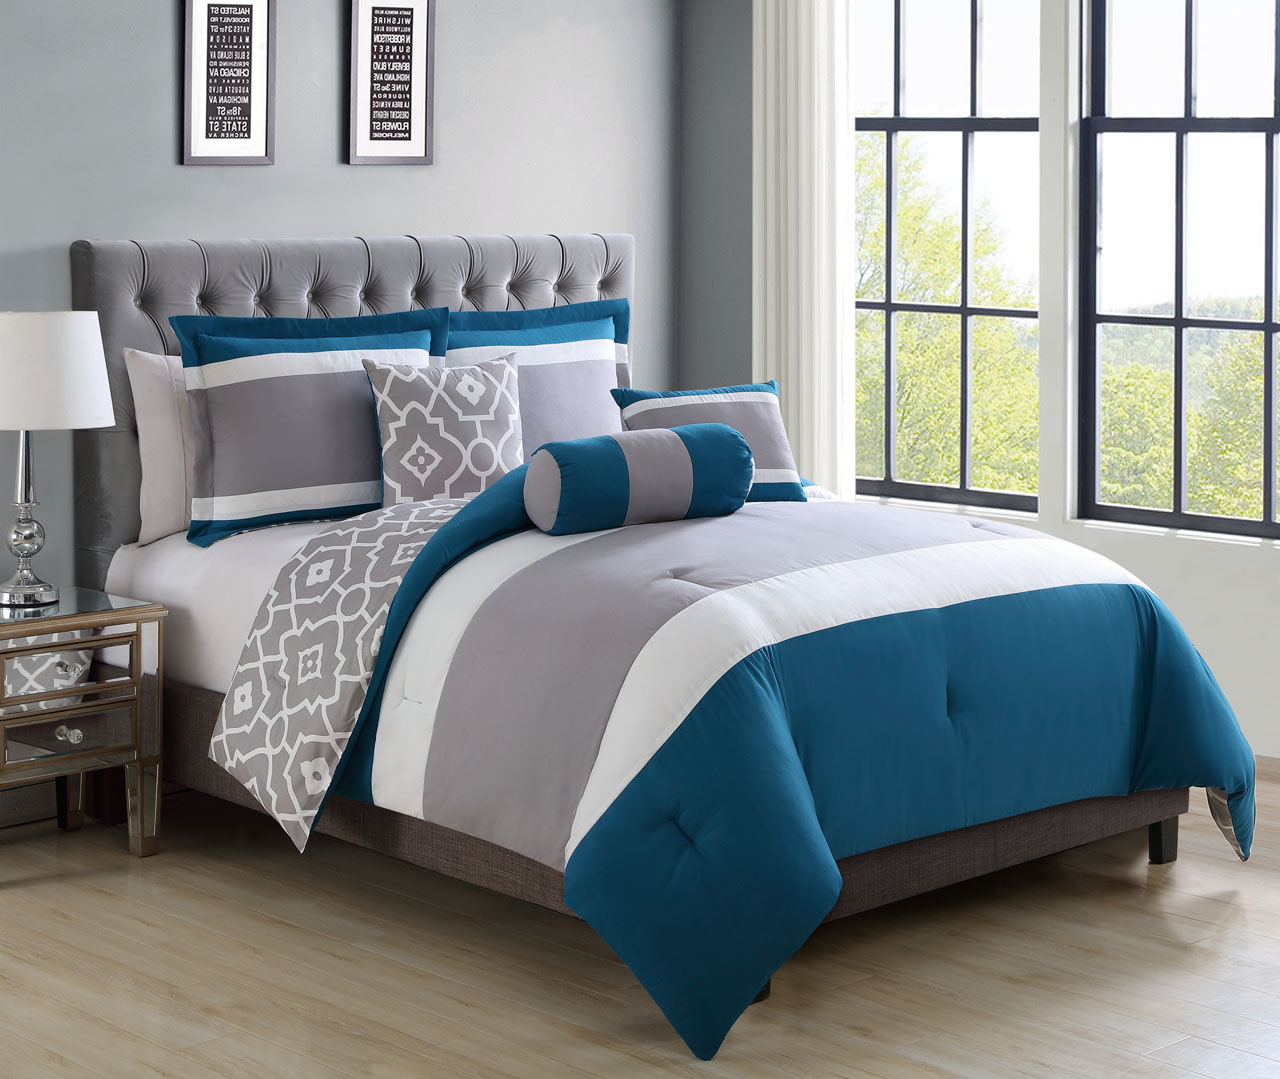 teal bedroom comforter sets emejing master bedroom comforter